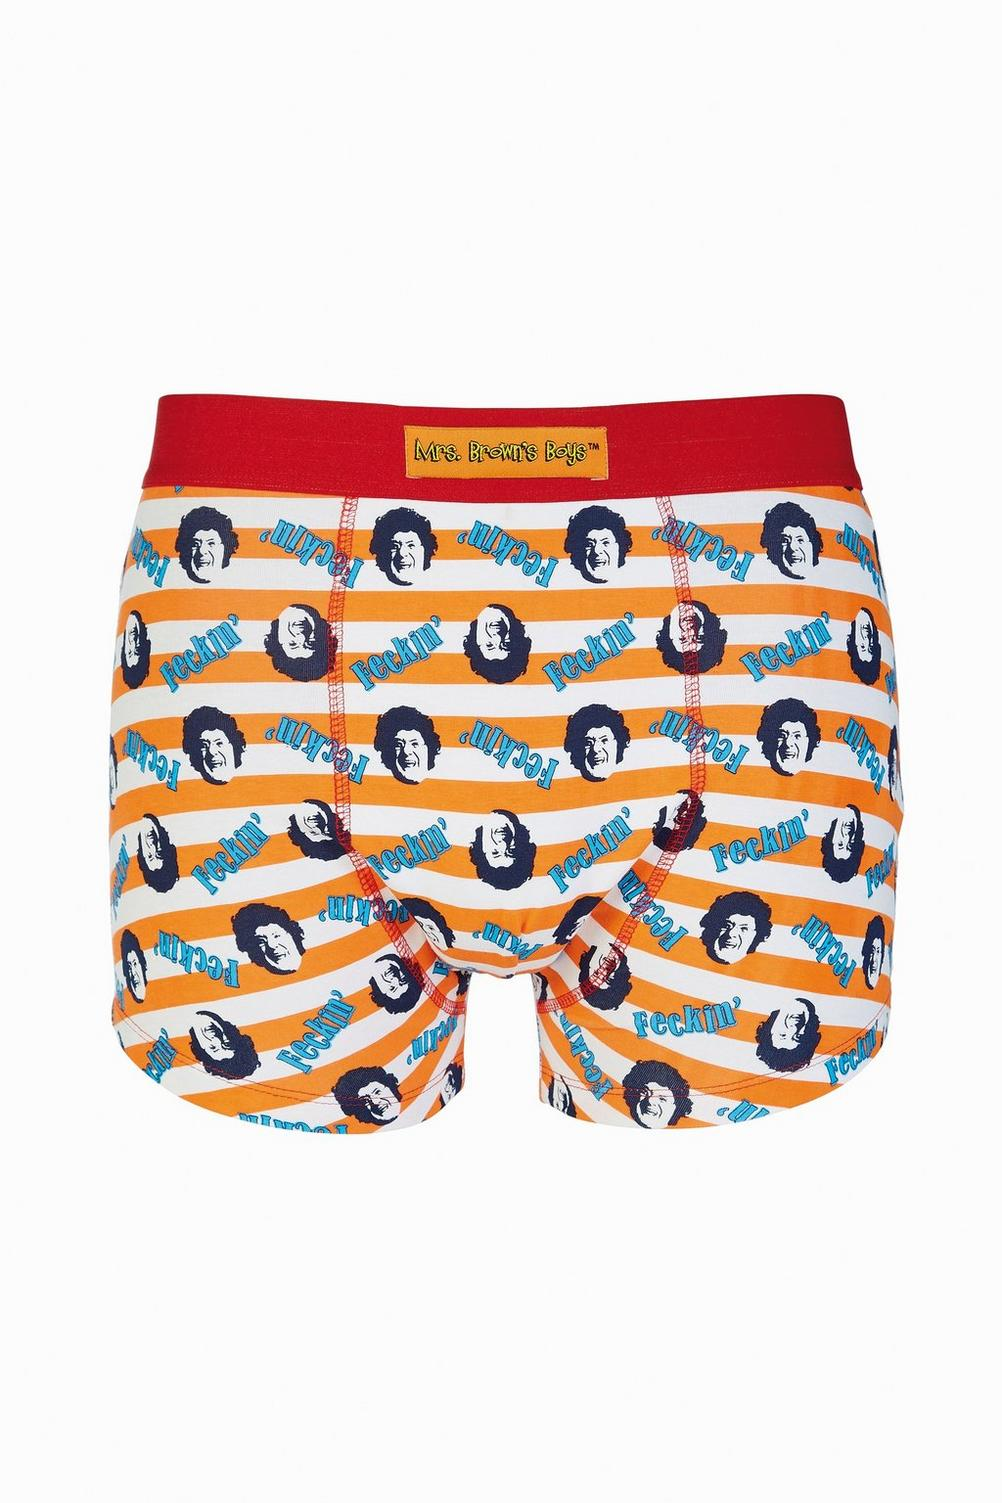 53d5acc1729f Image for Mrs Brown Boys Pack Of 2 Boxers from studio